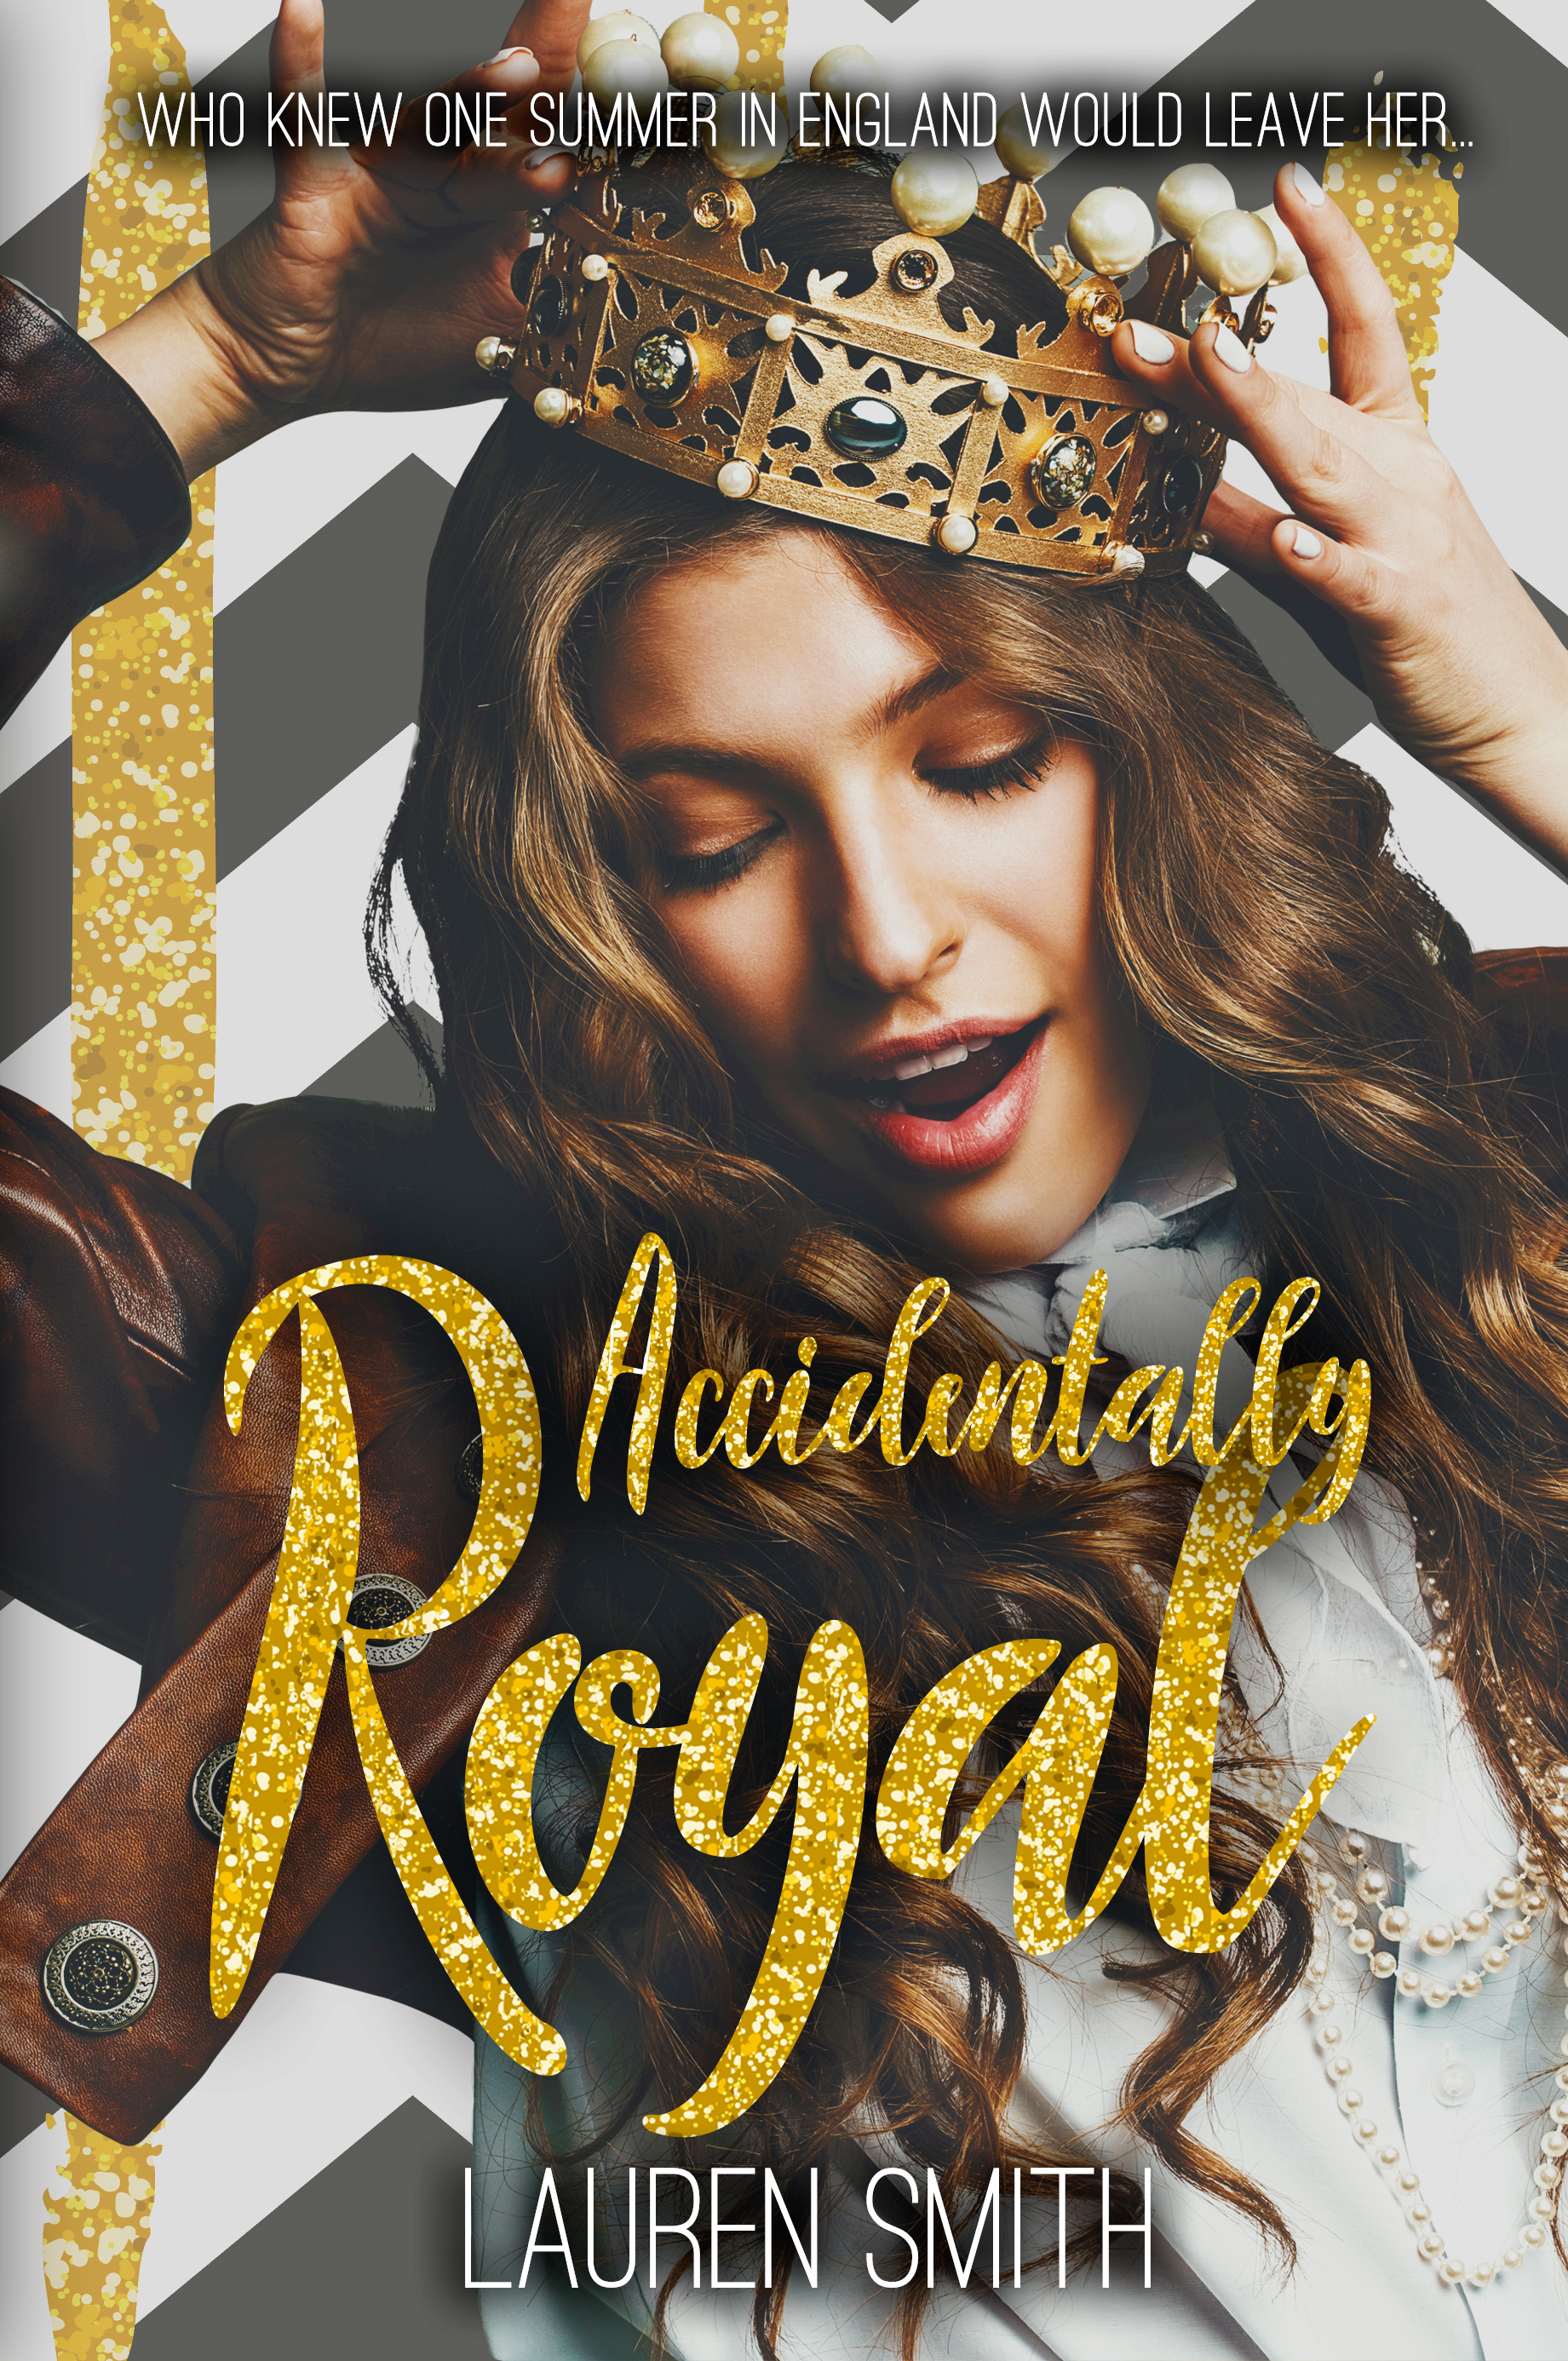 Accidentally Royal by Lauren Smith